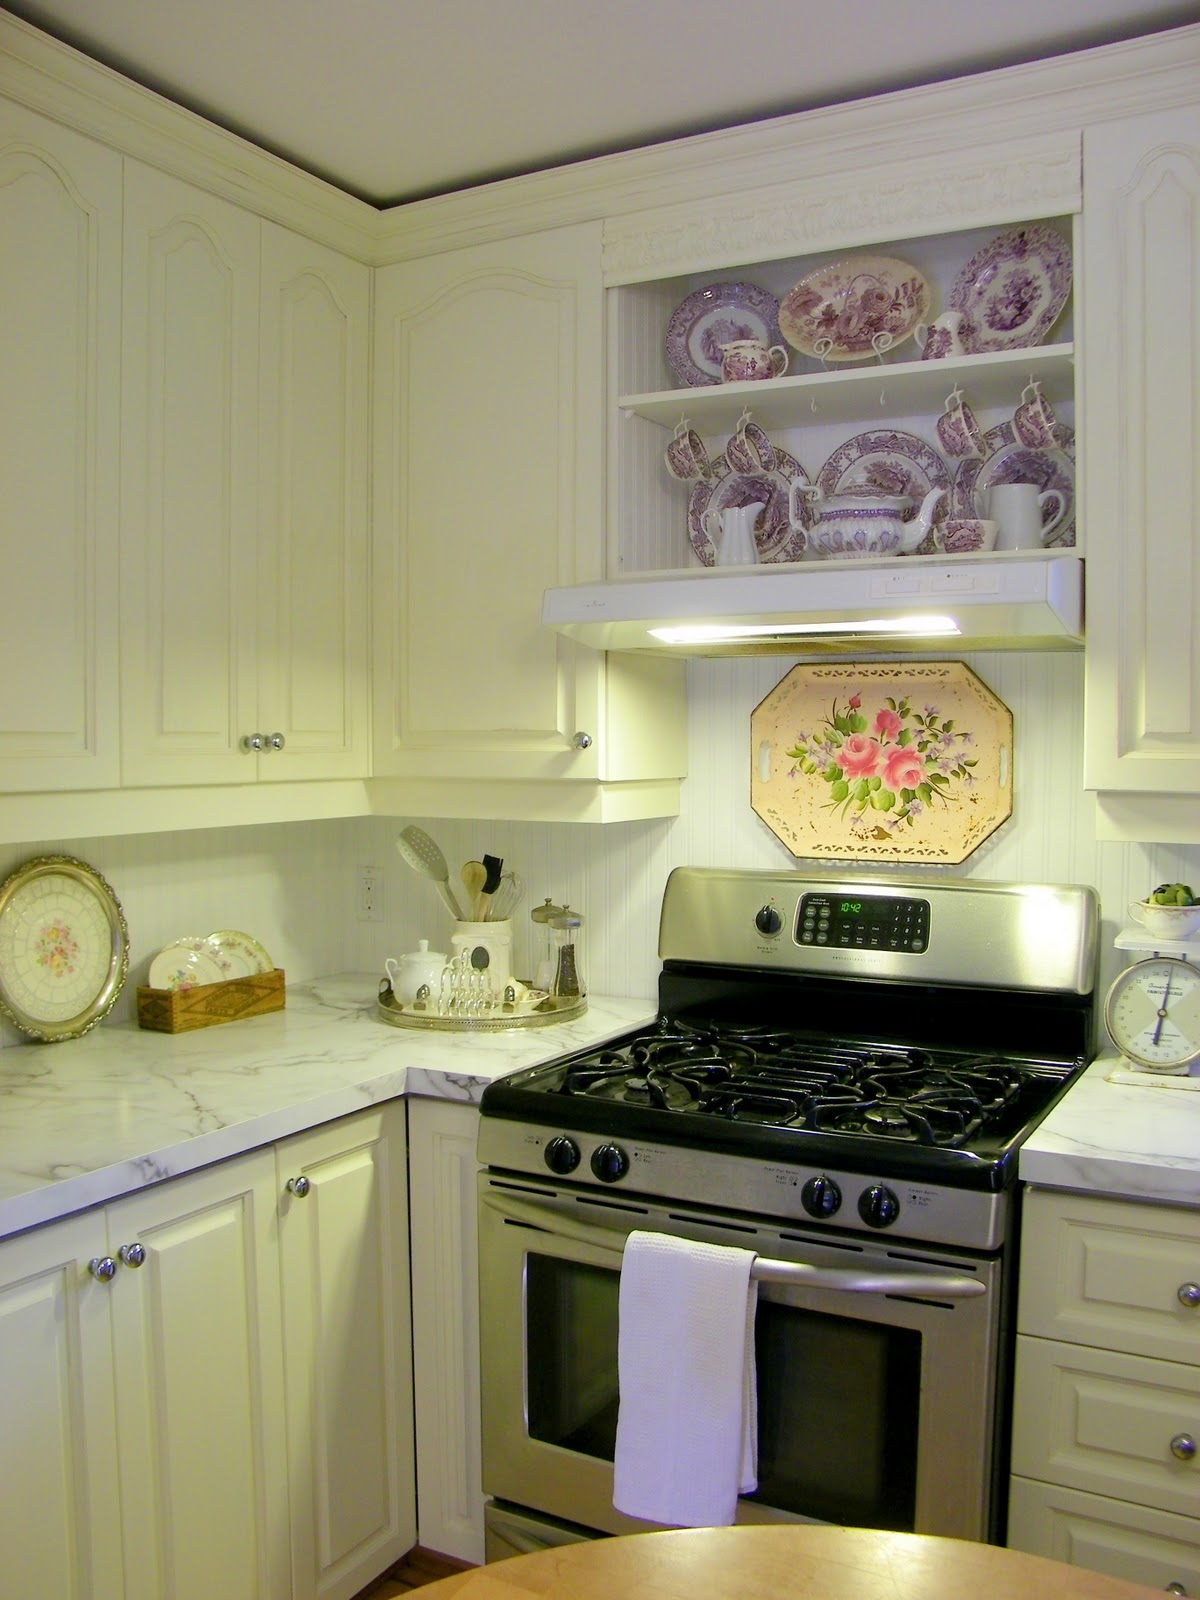 Maison Decor: Painting Kitchen Cabinets with Chalk Paint ...